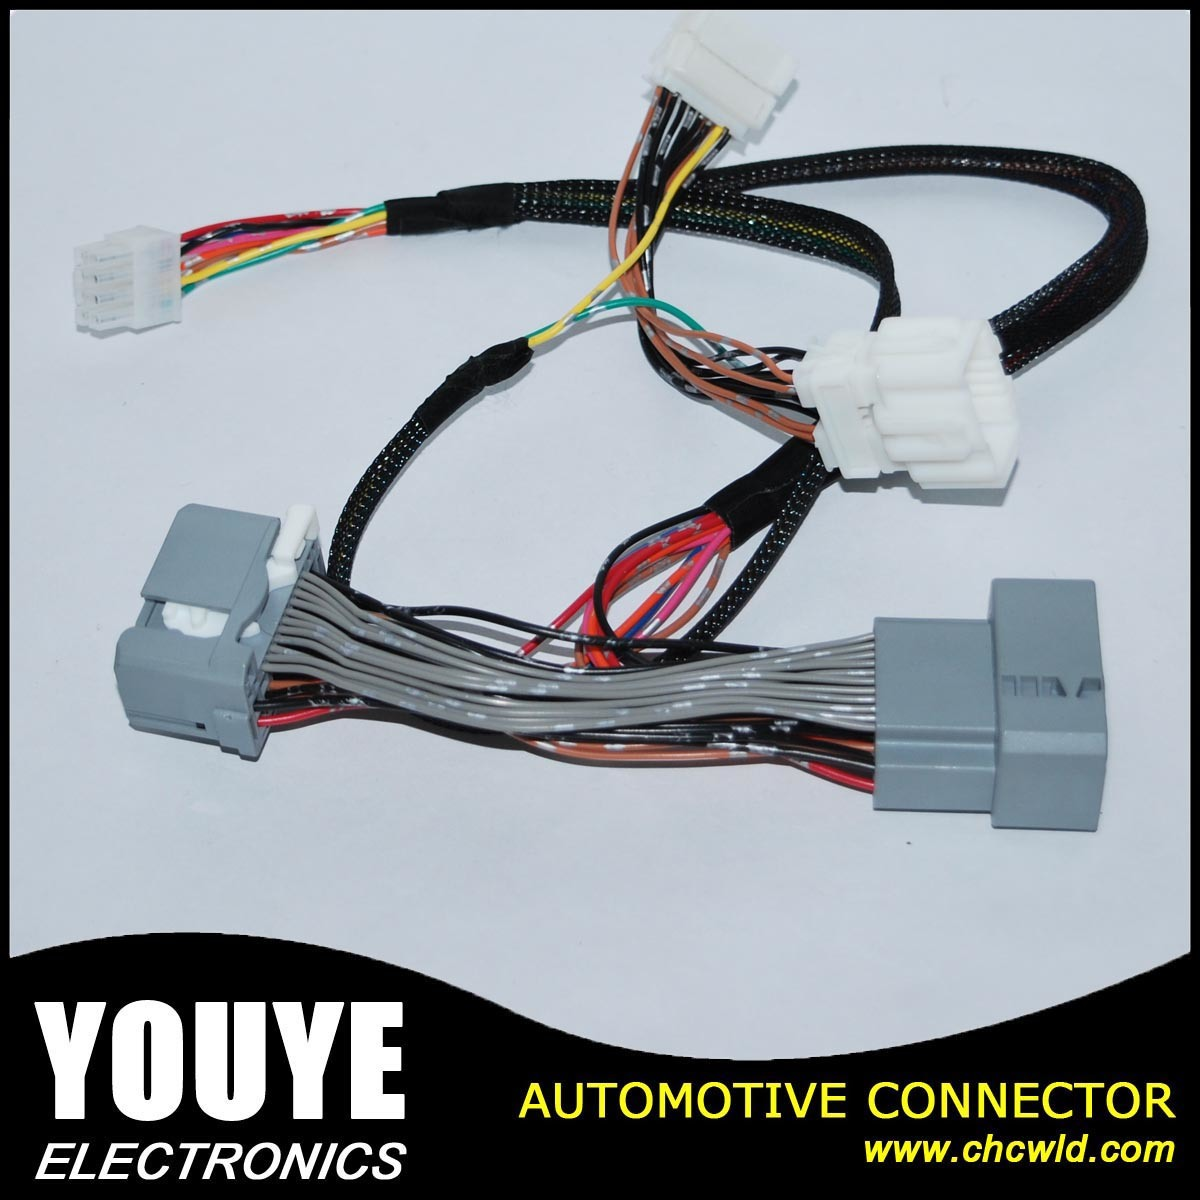 China High Quanlity Electronic Automotive Wiring Harness For Honda Connectors Wire Cable